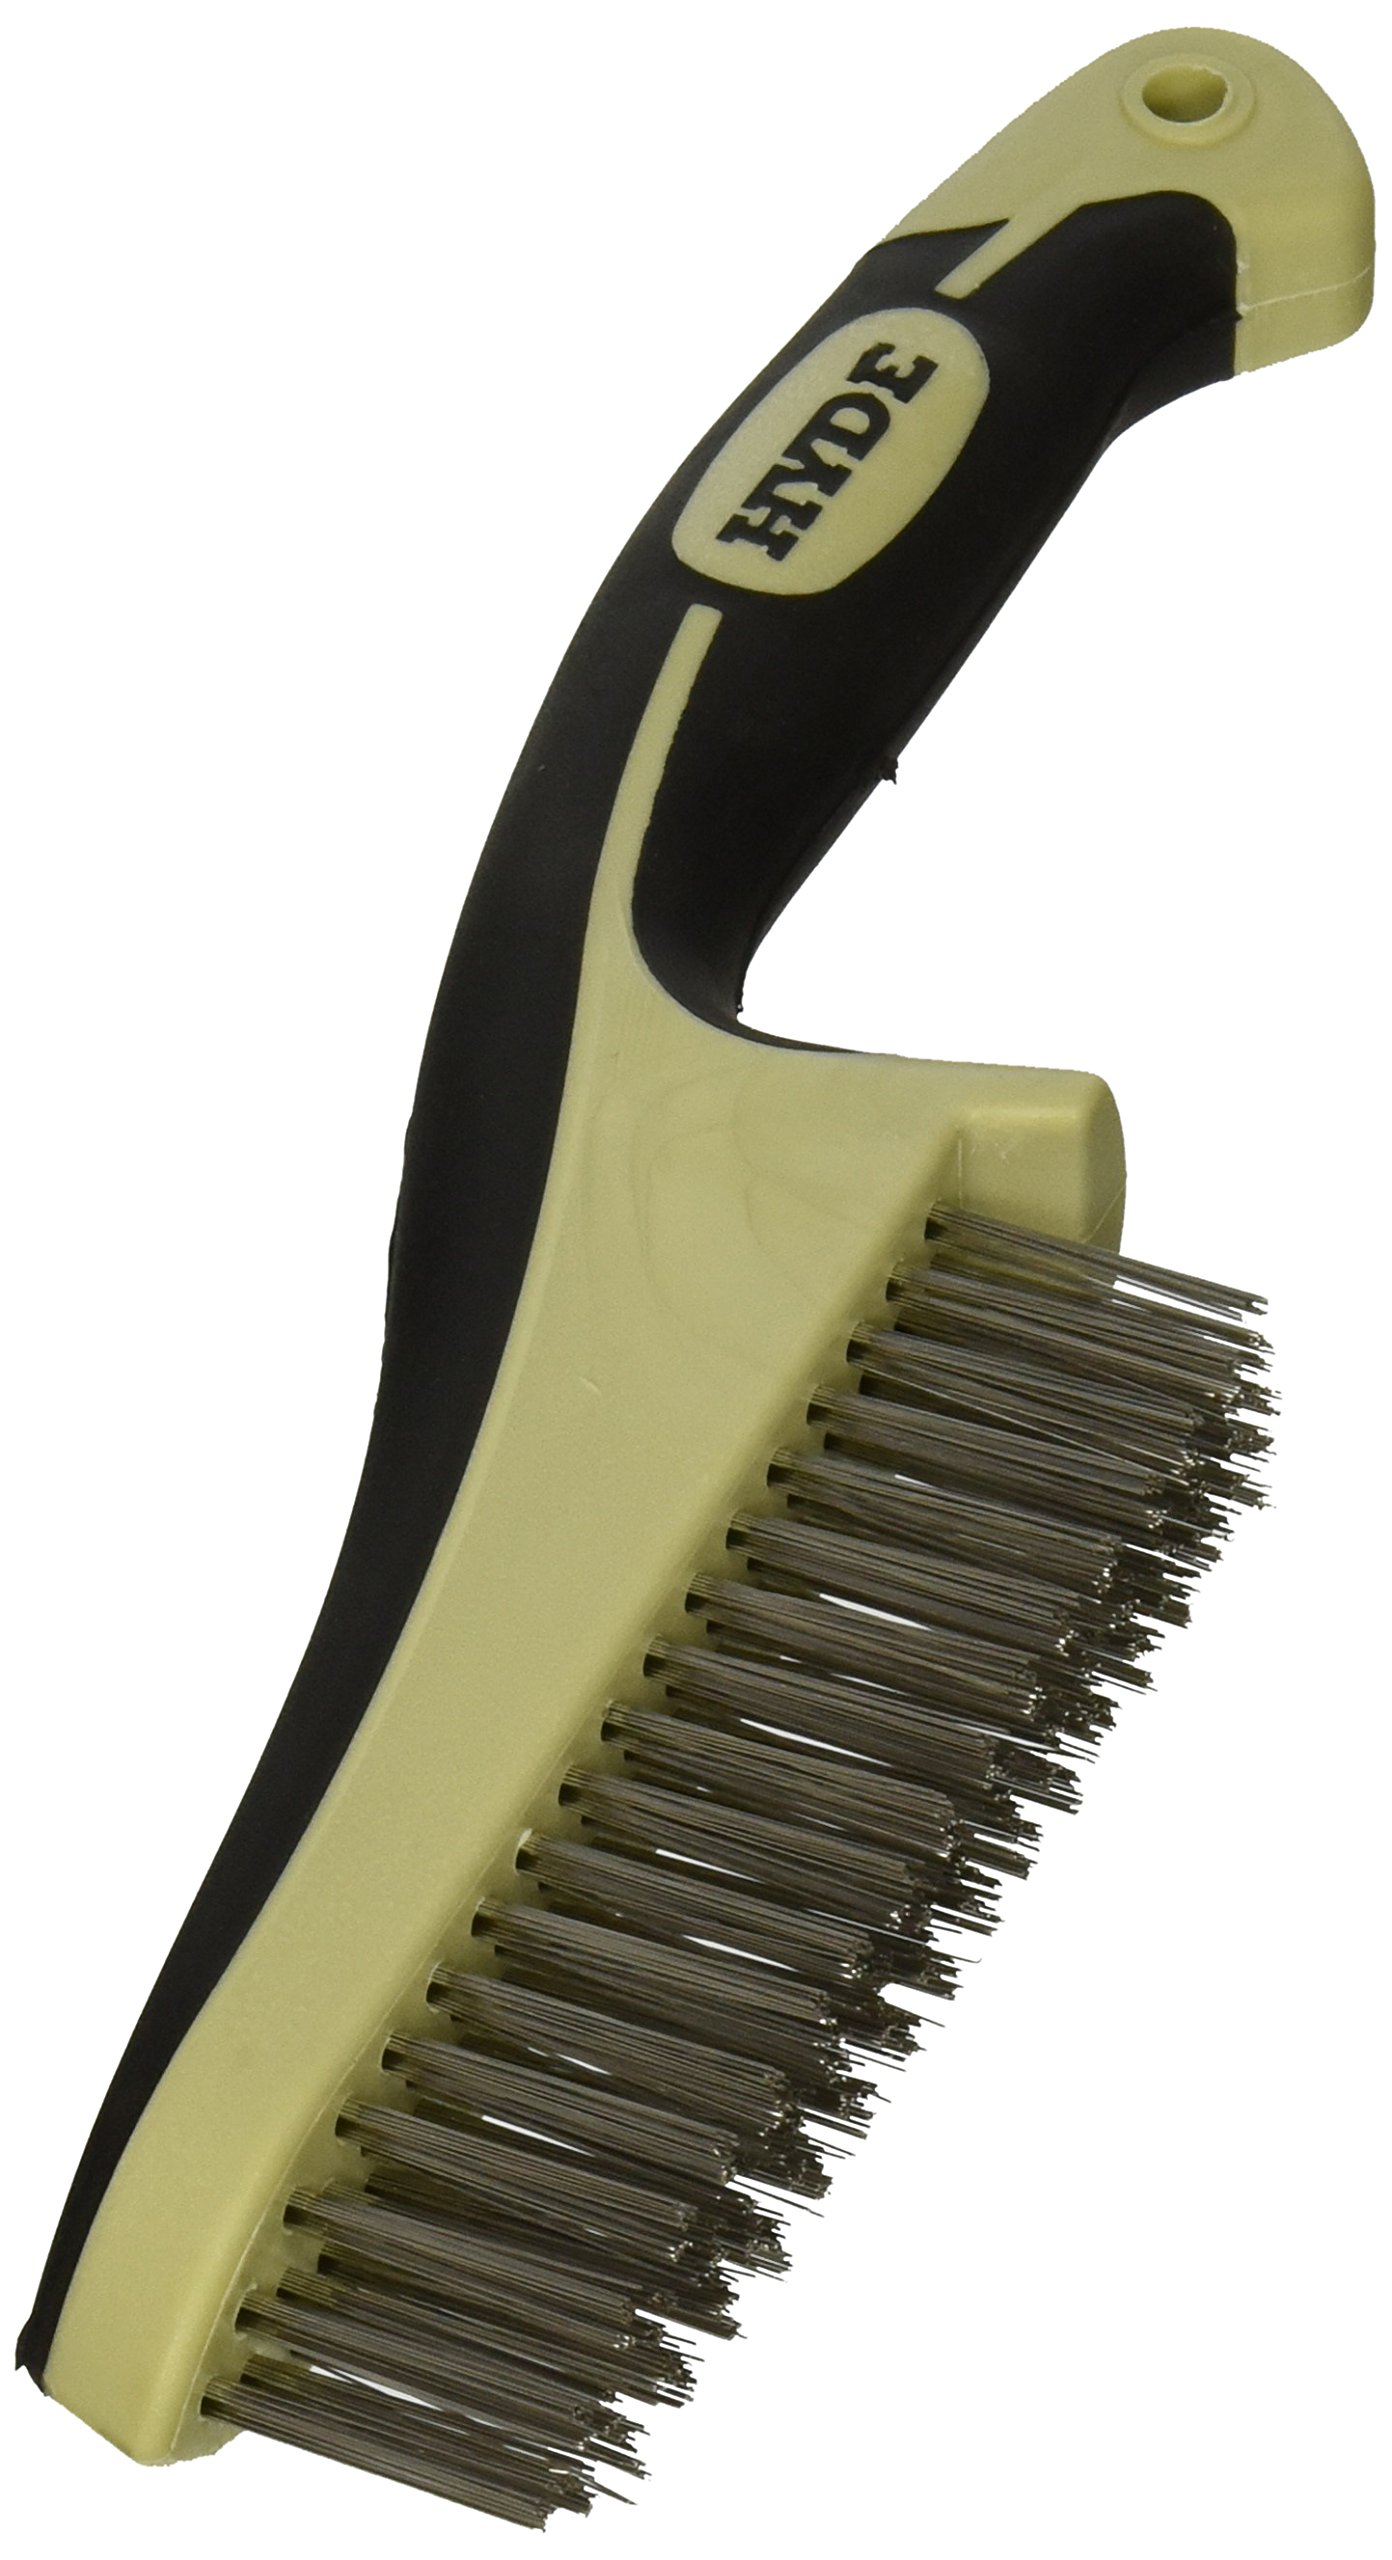 HYDE 46842 Stainless Steel Wire Brush with narrow profile, 11-inch, MAXXGRIP PRO by Hyde